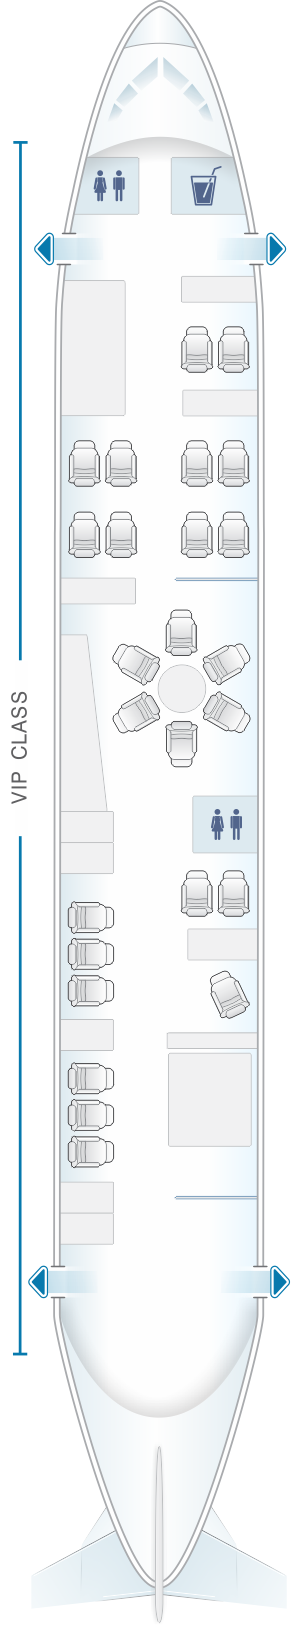 Seat map for White Airways Airbus A319 CS TQJ day configuration